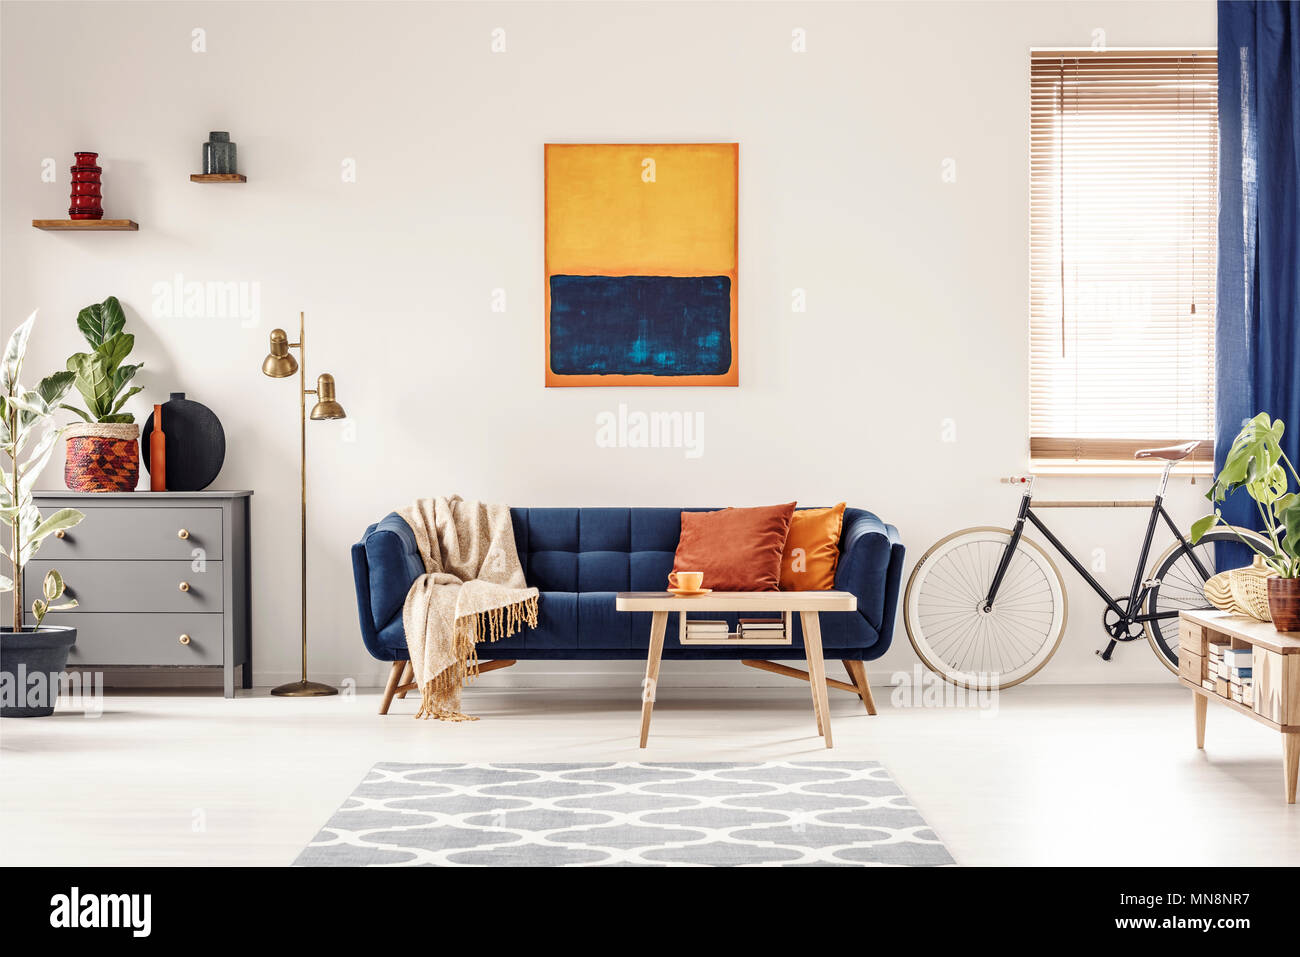 Remarkable Yellow And Blue Painting Hanging On White Wall In Bright Squirreltailoven Fun Painted Chair Ideas Images Squirreltailovenorg